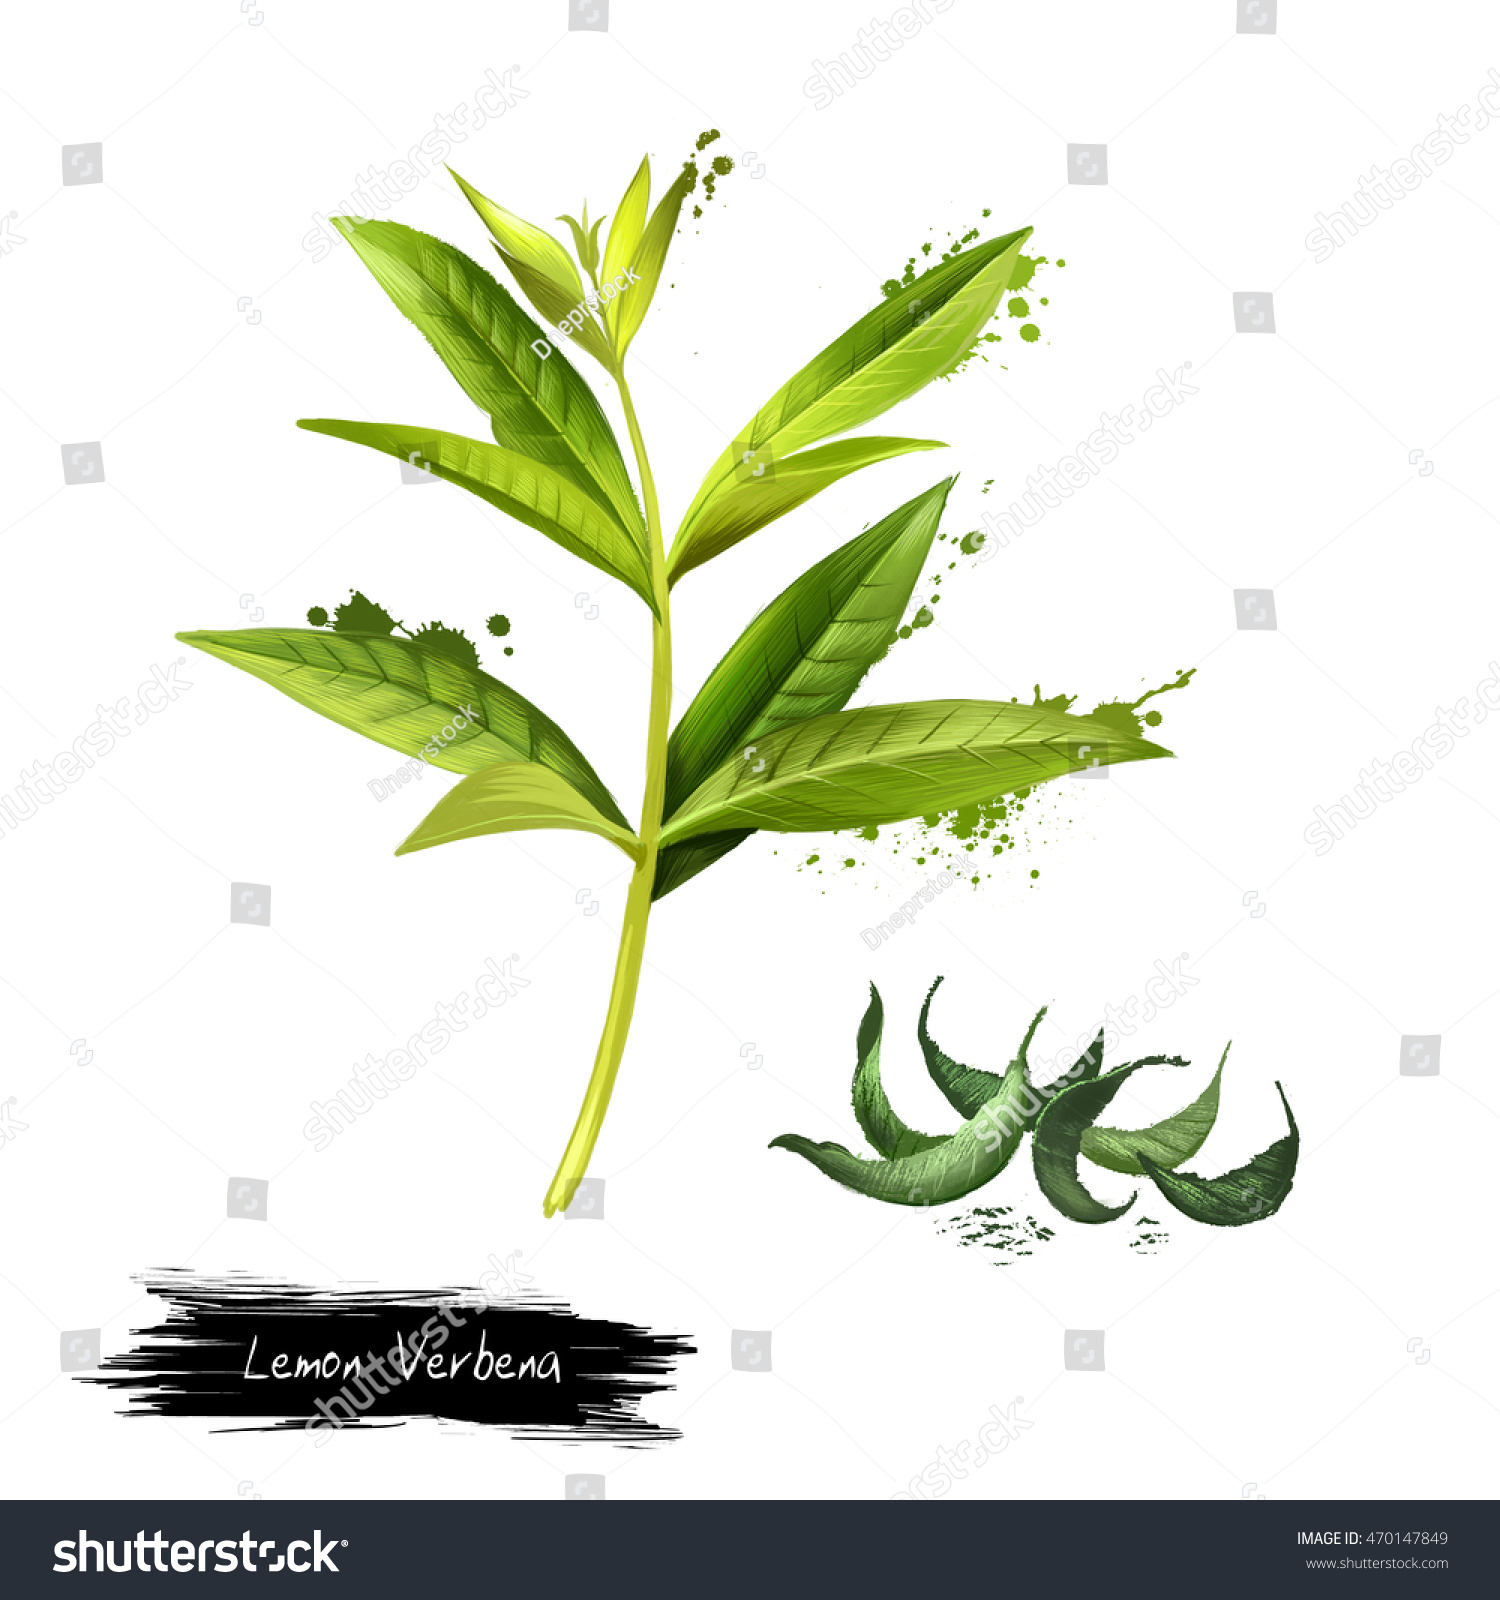 Lemon verbena fresh and dried Lemon beebrush Aloysia citrodora is a species of flowering plant in verbena family Labels for Essential Oils and Natural Supplements Digital art image